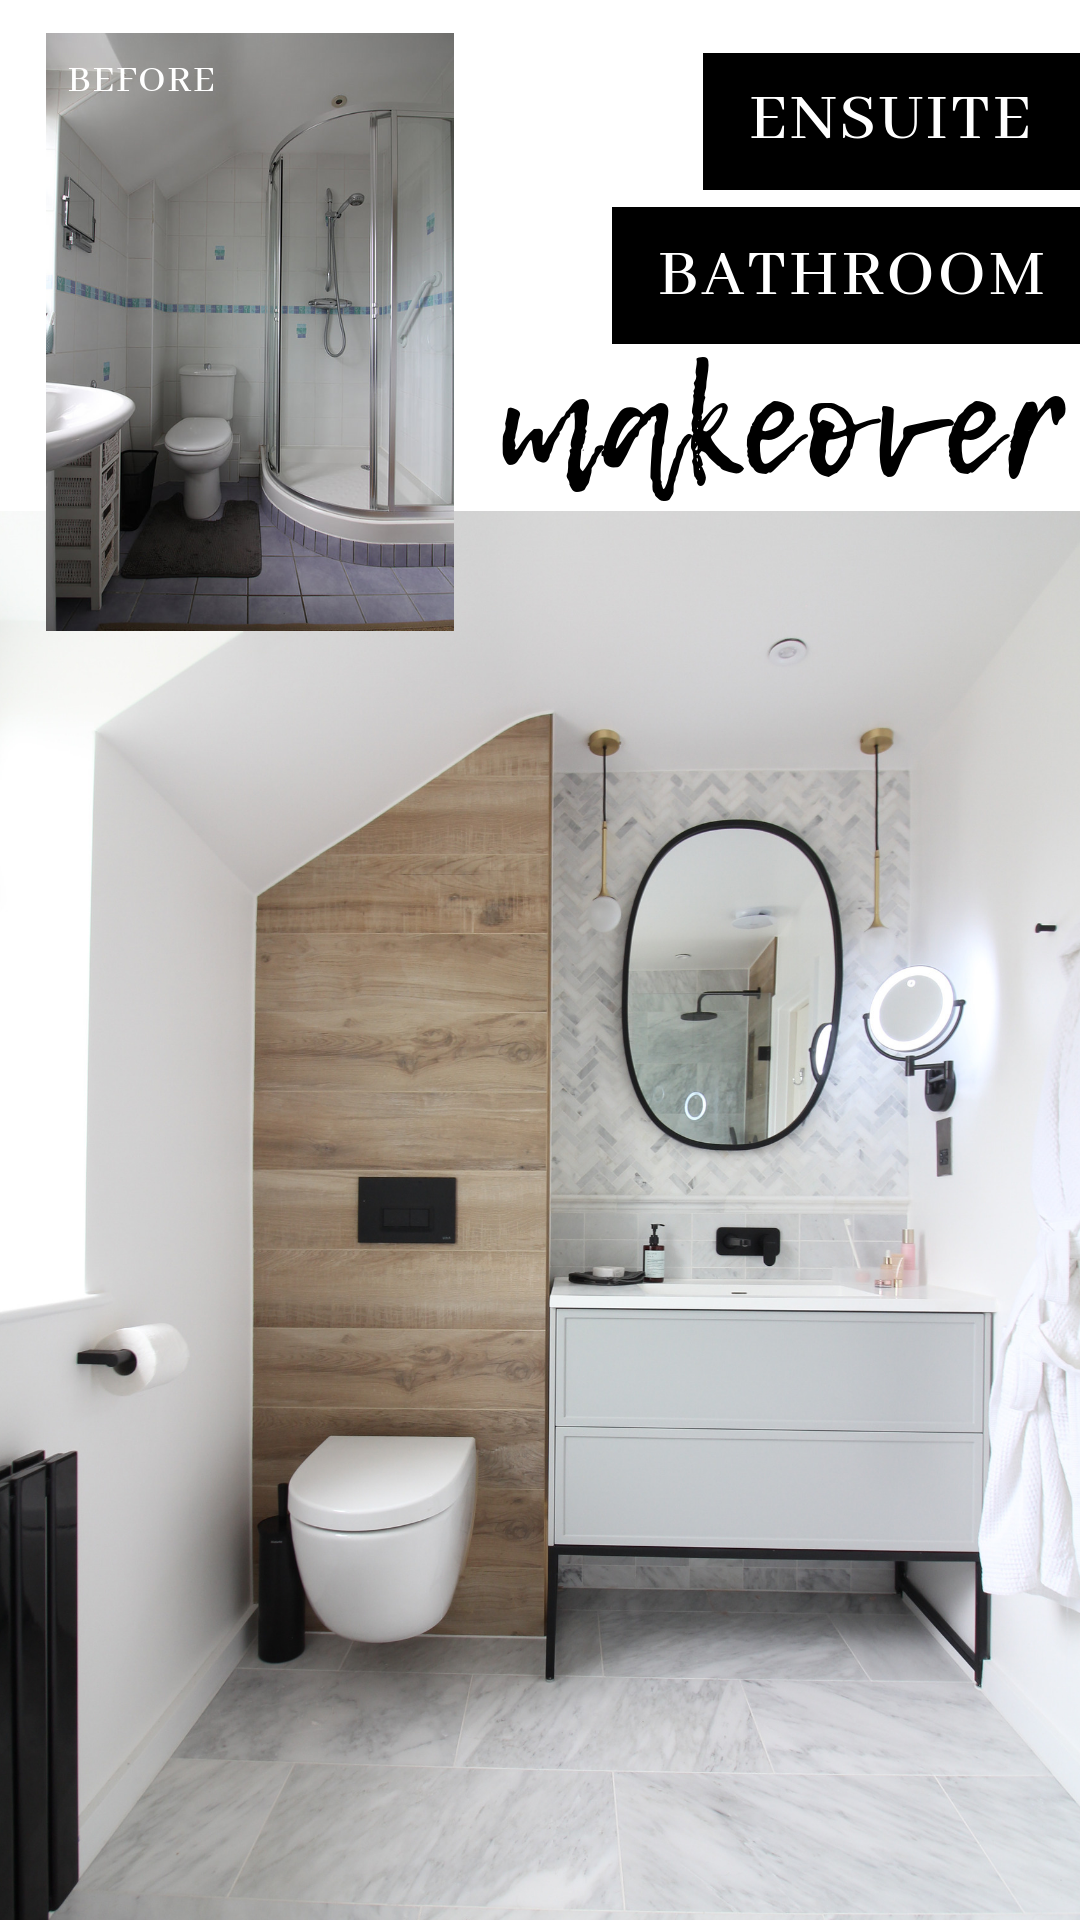 Small Bathroom Renovation Ideas This Ensuite Was Remodeled To A High Standard Using Marble Her Small Bathroom Renovations Bathroom Design Small Small Bathroom